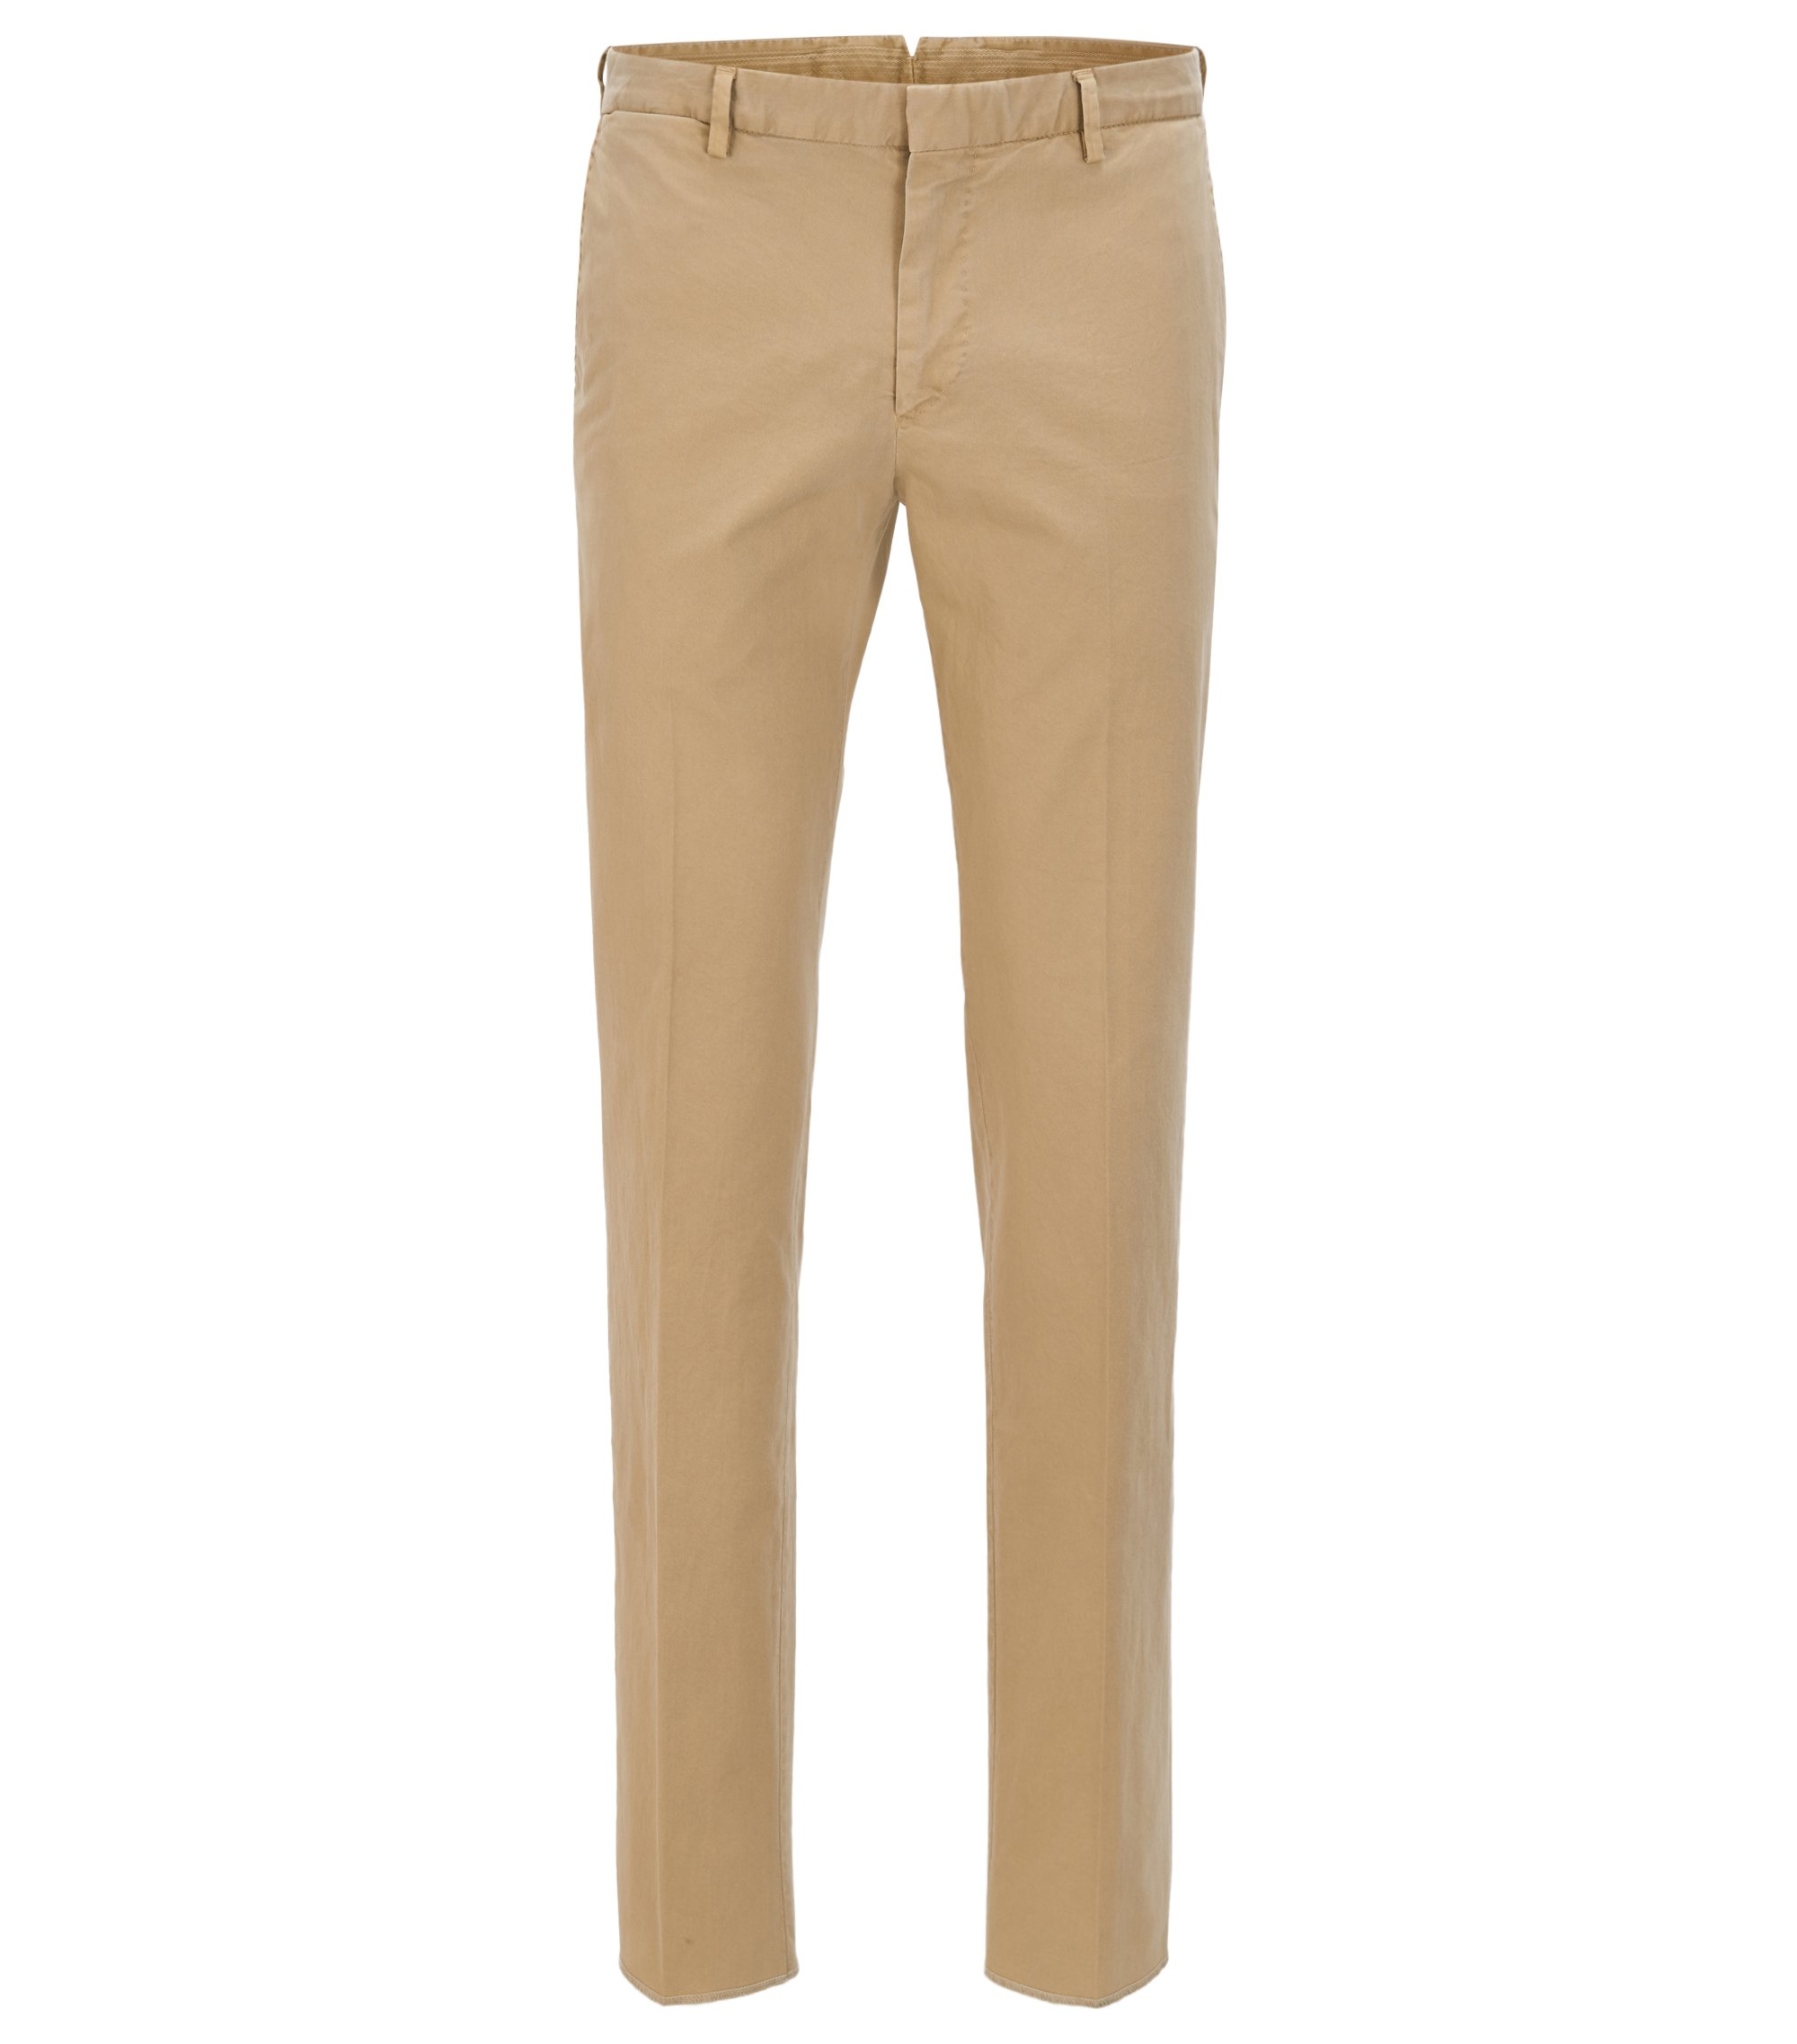 Garment-Dyed Stretch Cotton Suiting Pant, Slim Fit | Barlow D, Beige